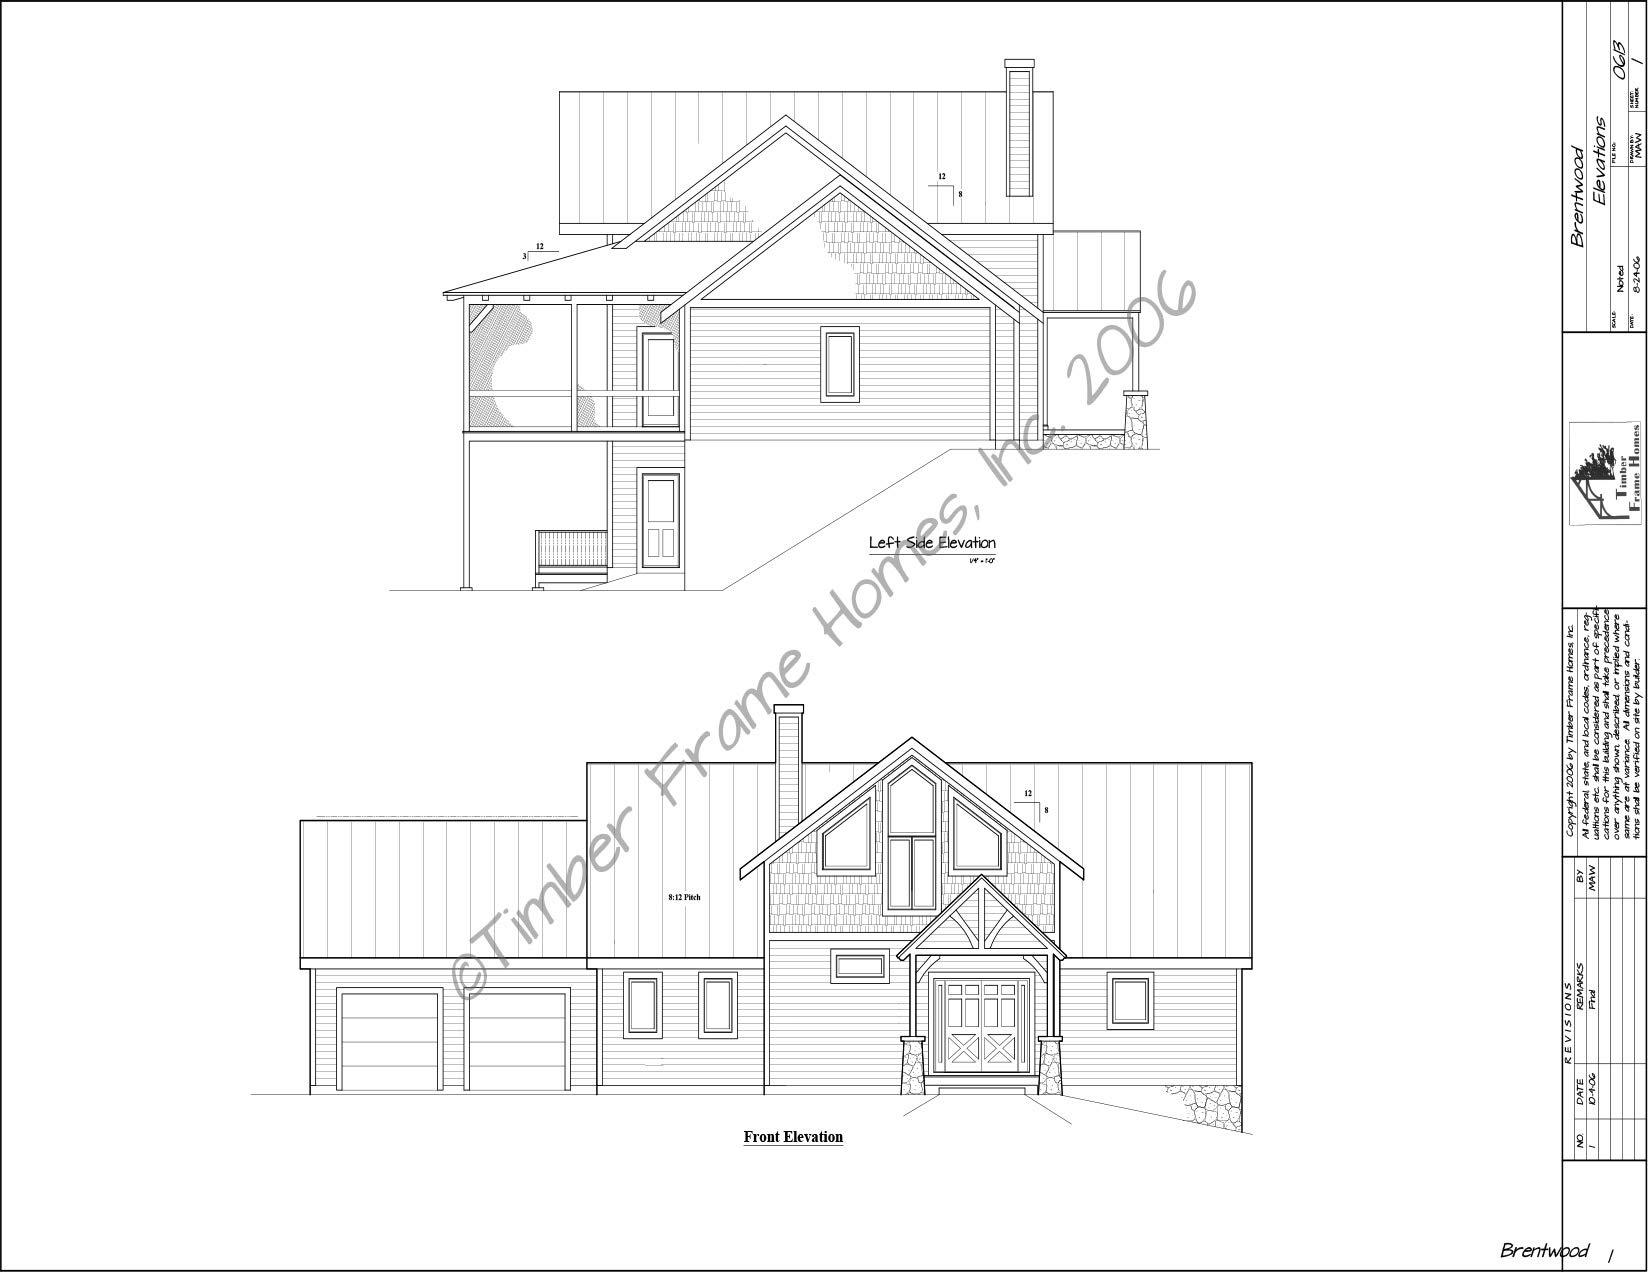 Home Plans - The Brentwood Timber Frame (Design Proof) by TimberStead